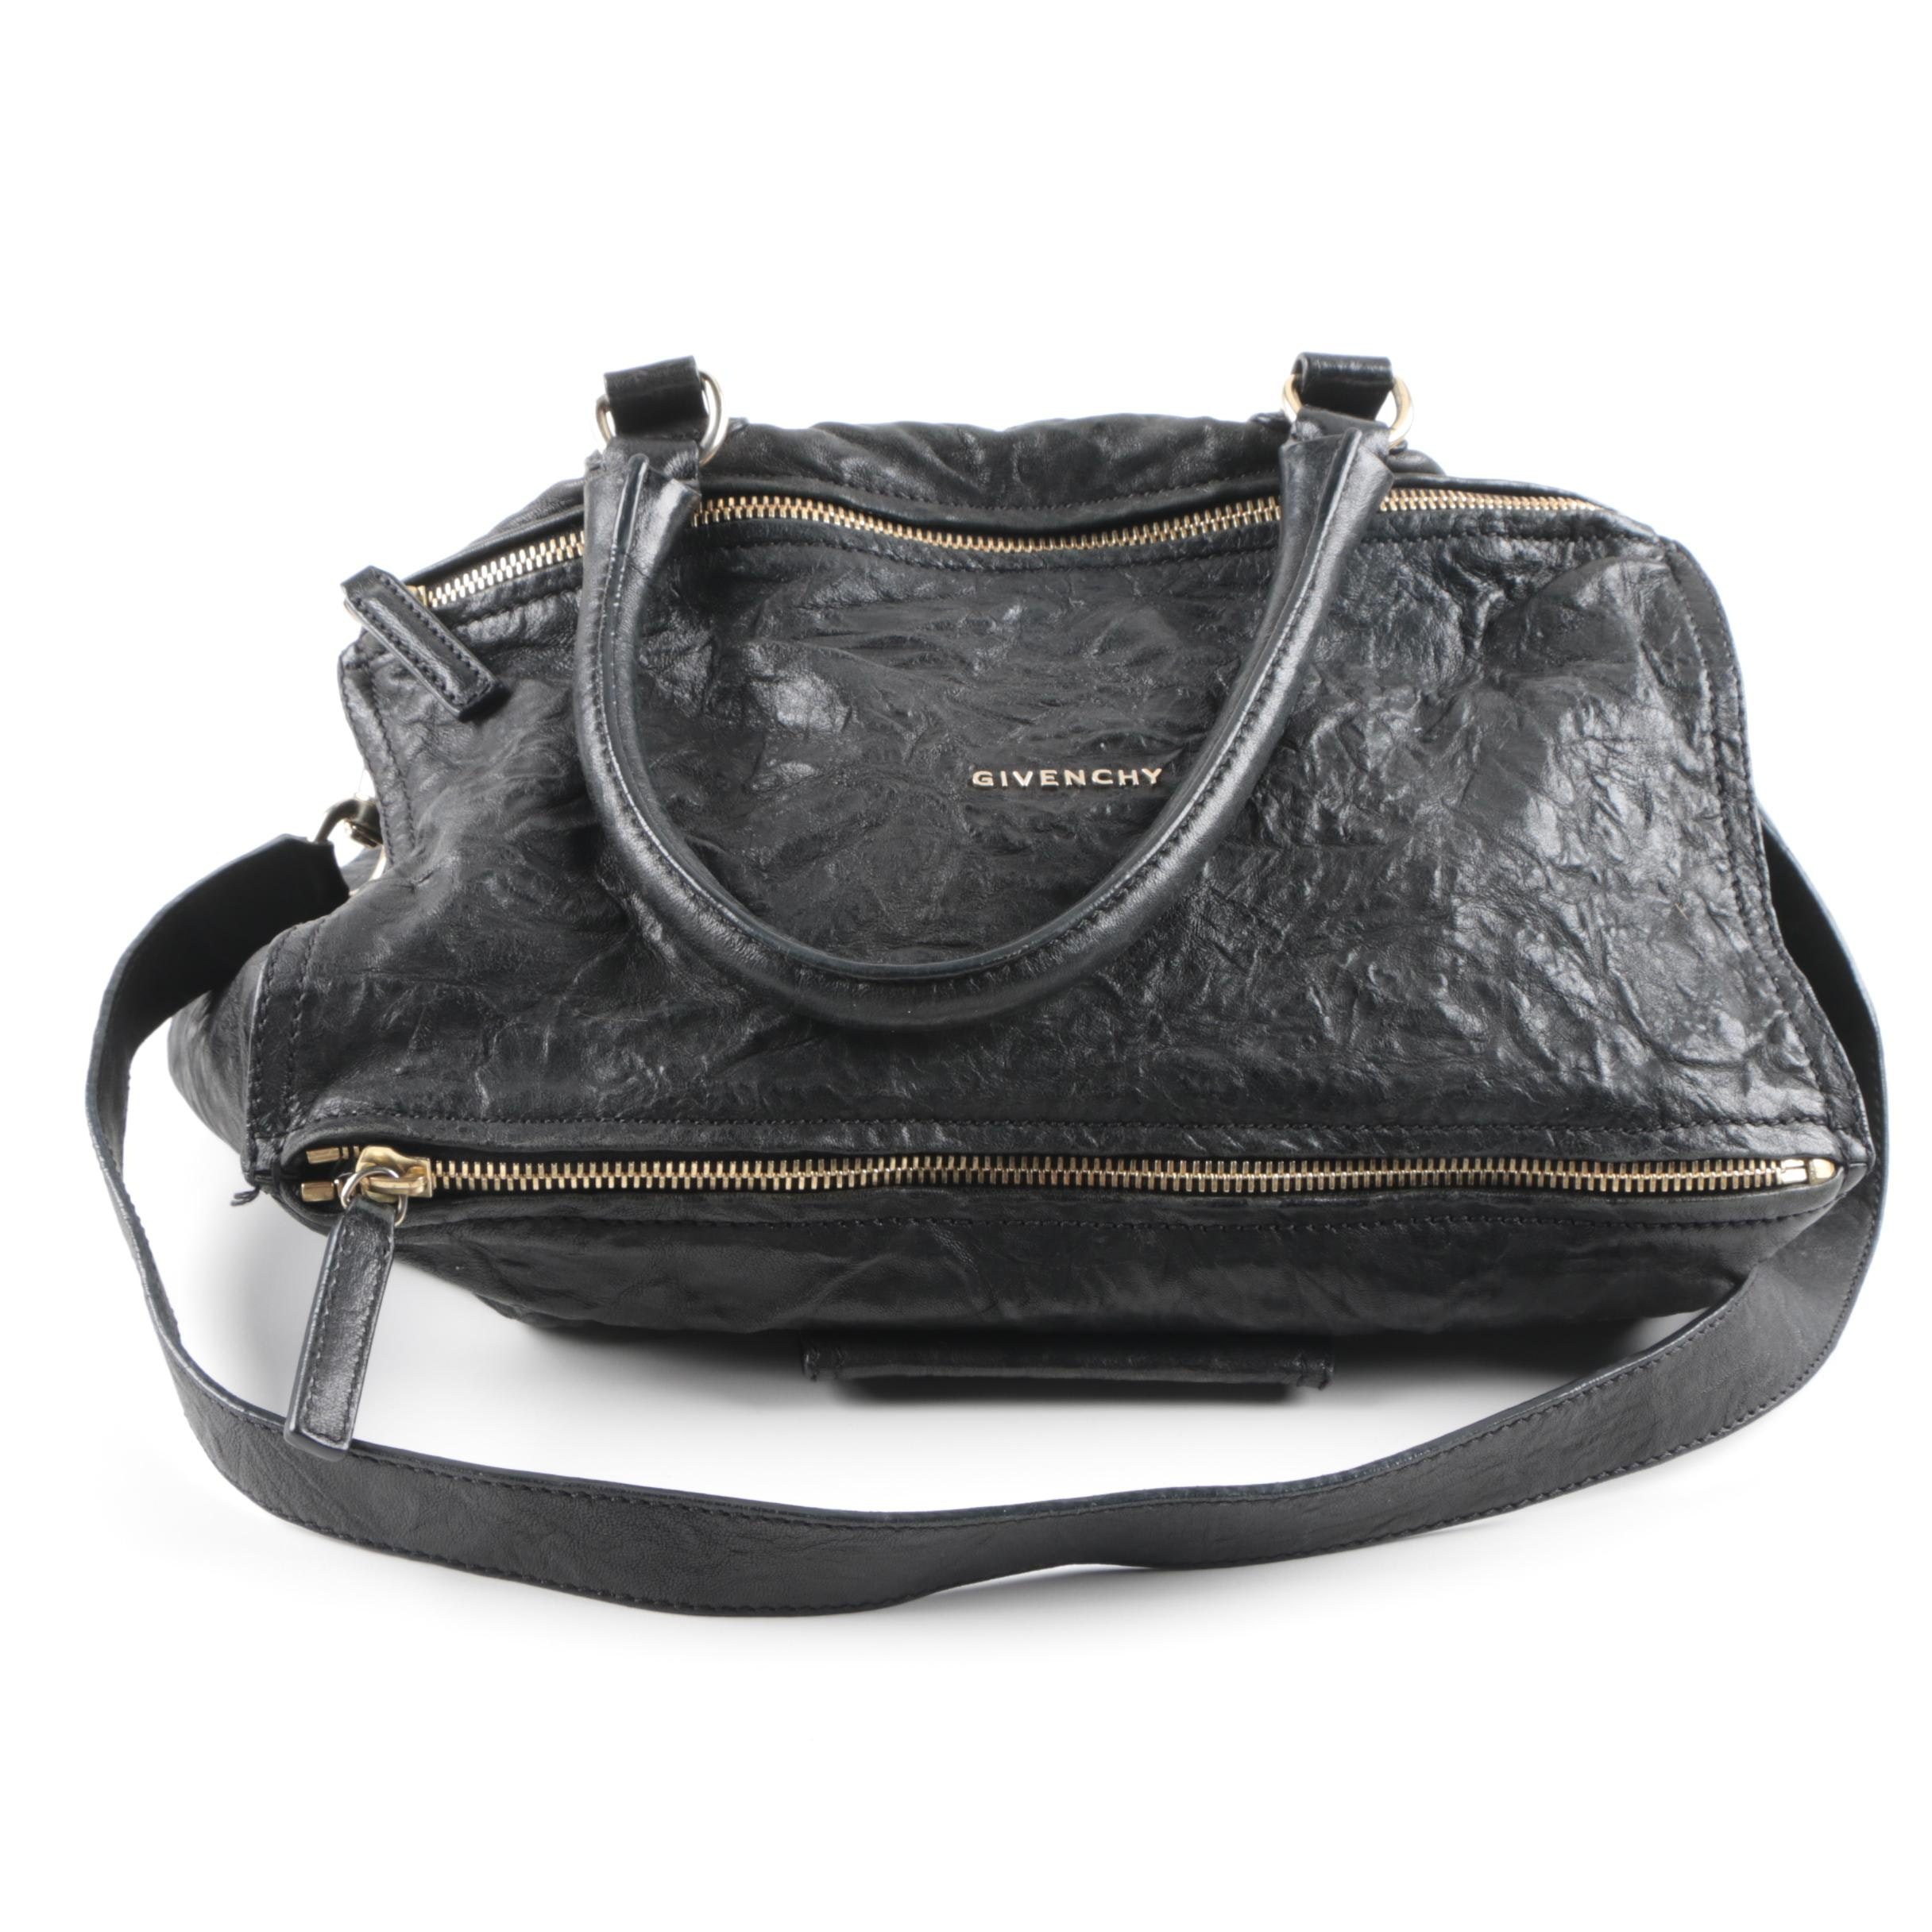 Givenchy Old Pepe Leather Pandora Handbag